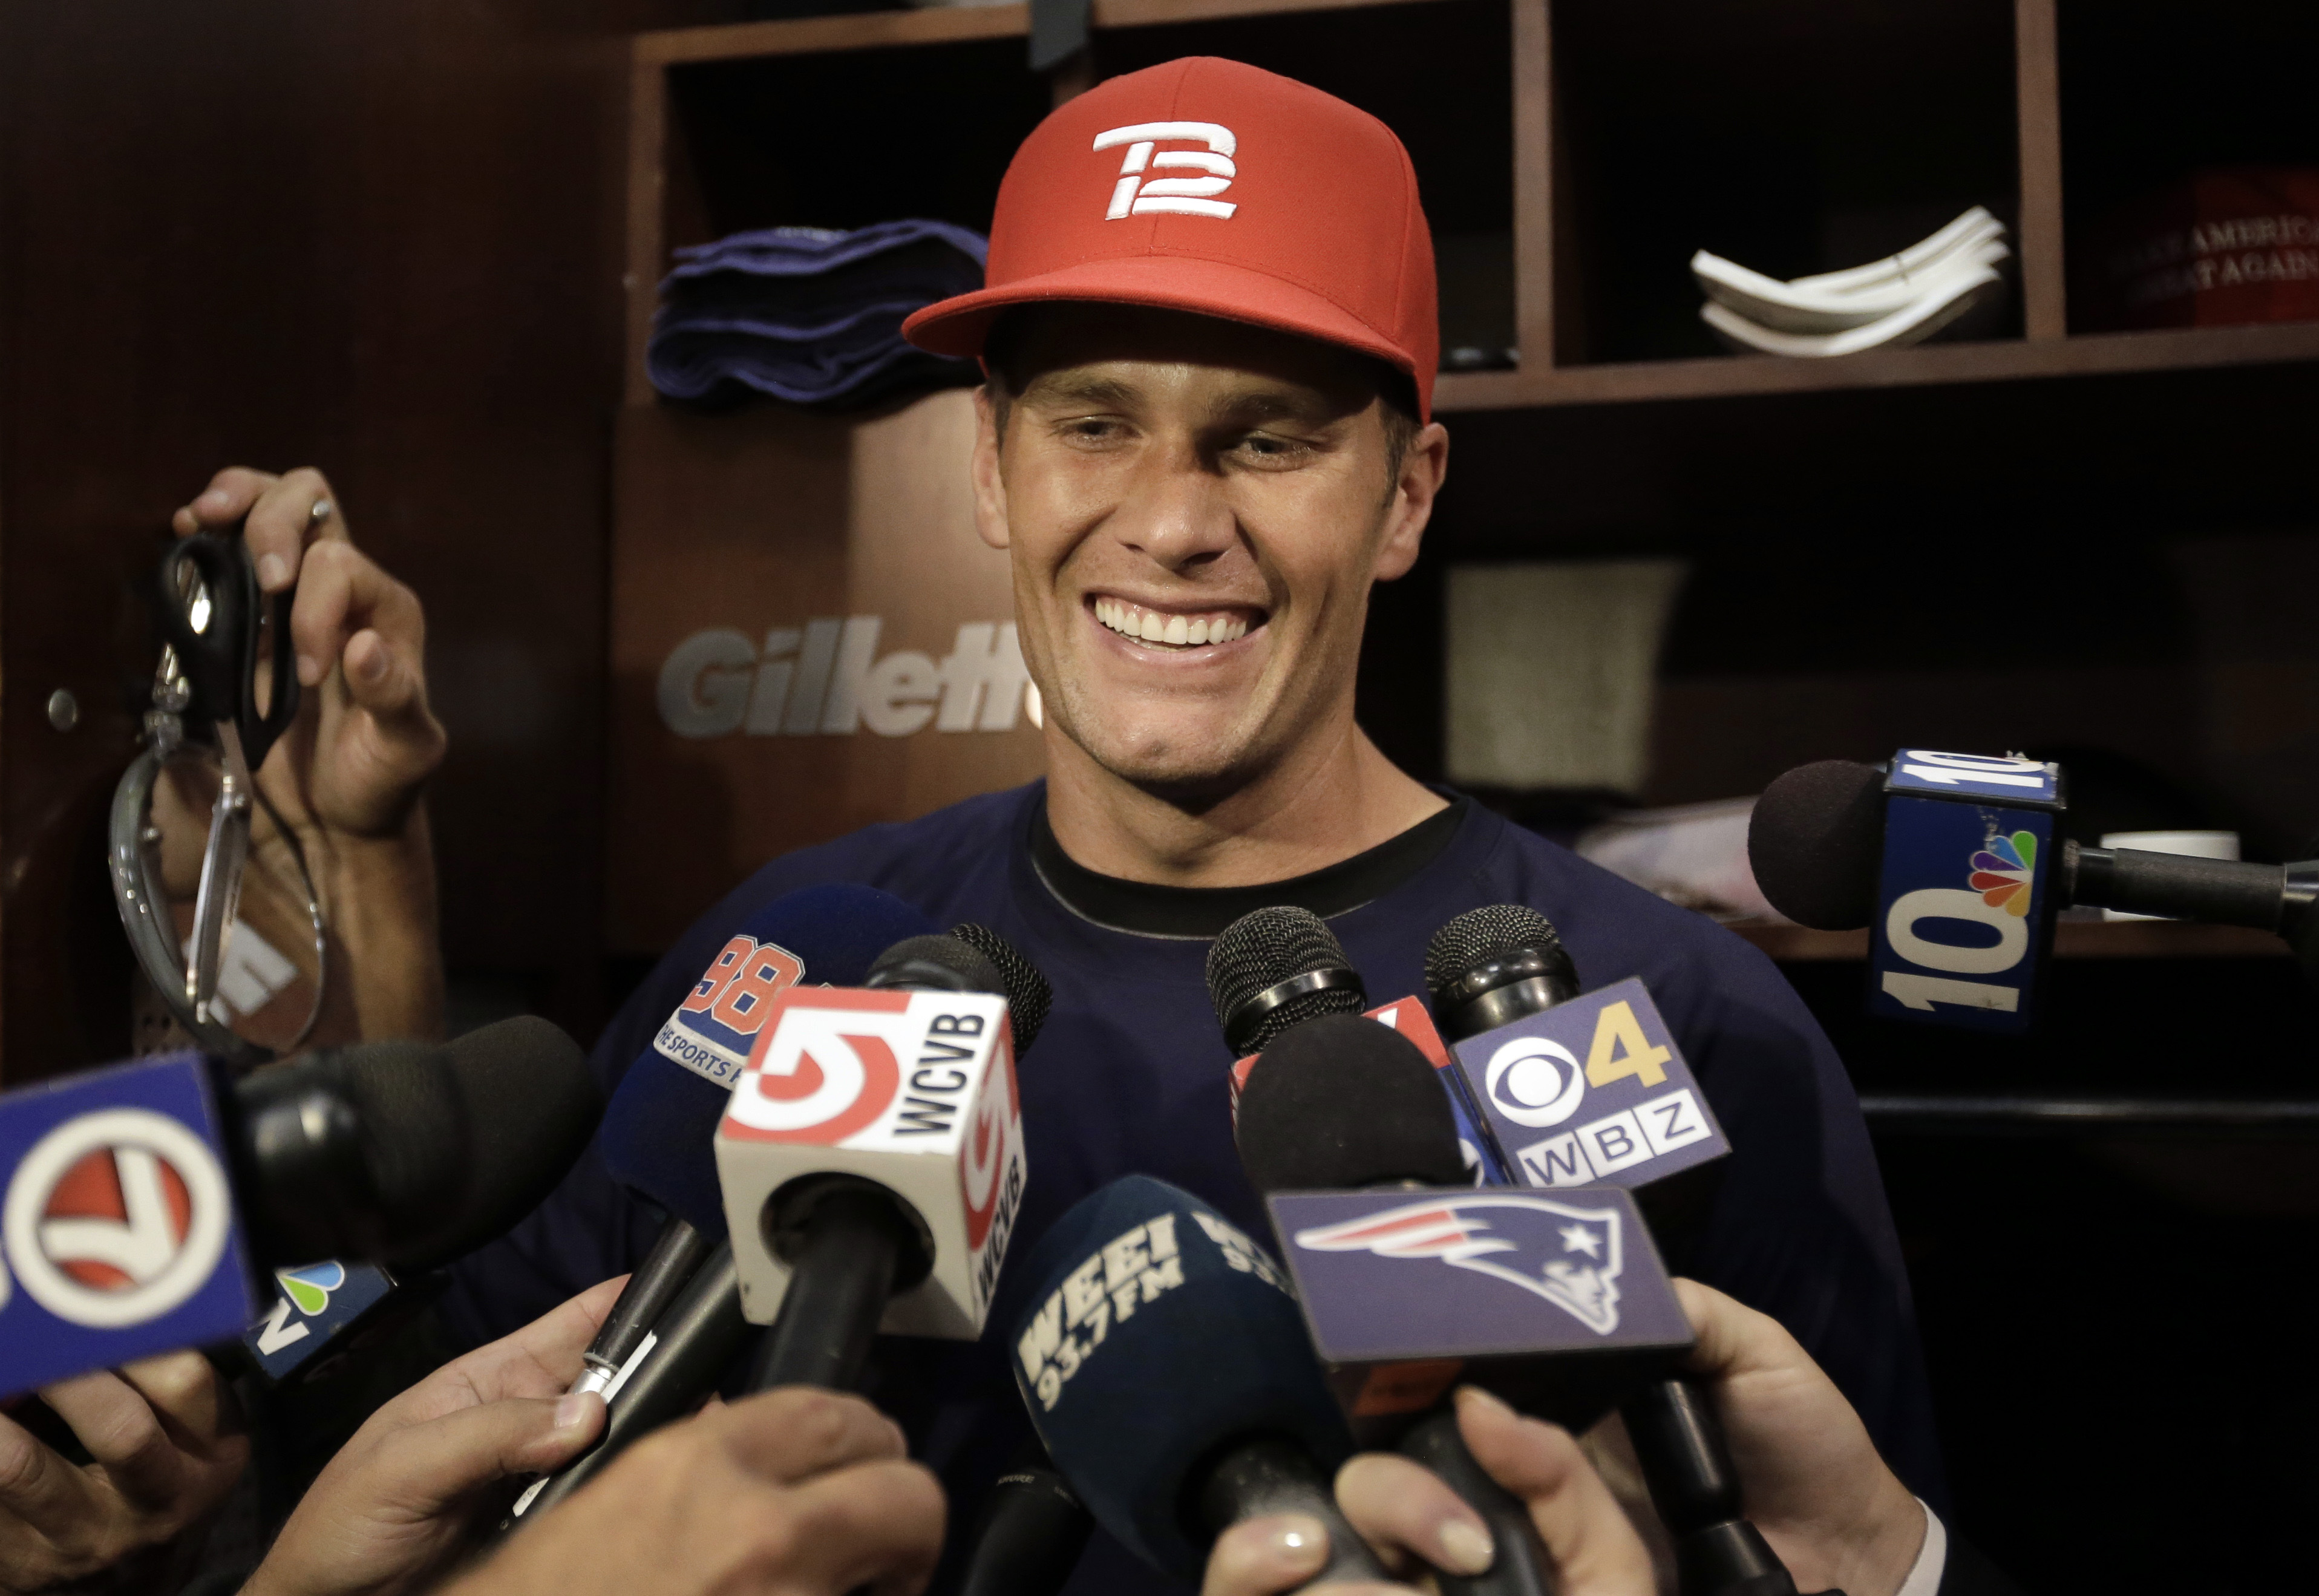 New England Patriots quarterback Tom Brady smiles while speaking with reporters in the locker room at Gillette Stadium before an NFL football practice, Wednesday, Sept. 23, 2015, in Foxborough, Mass. (AP Photo/Steven Senne)